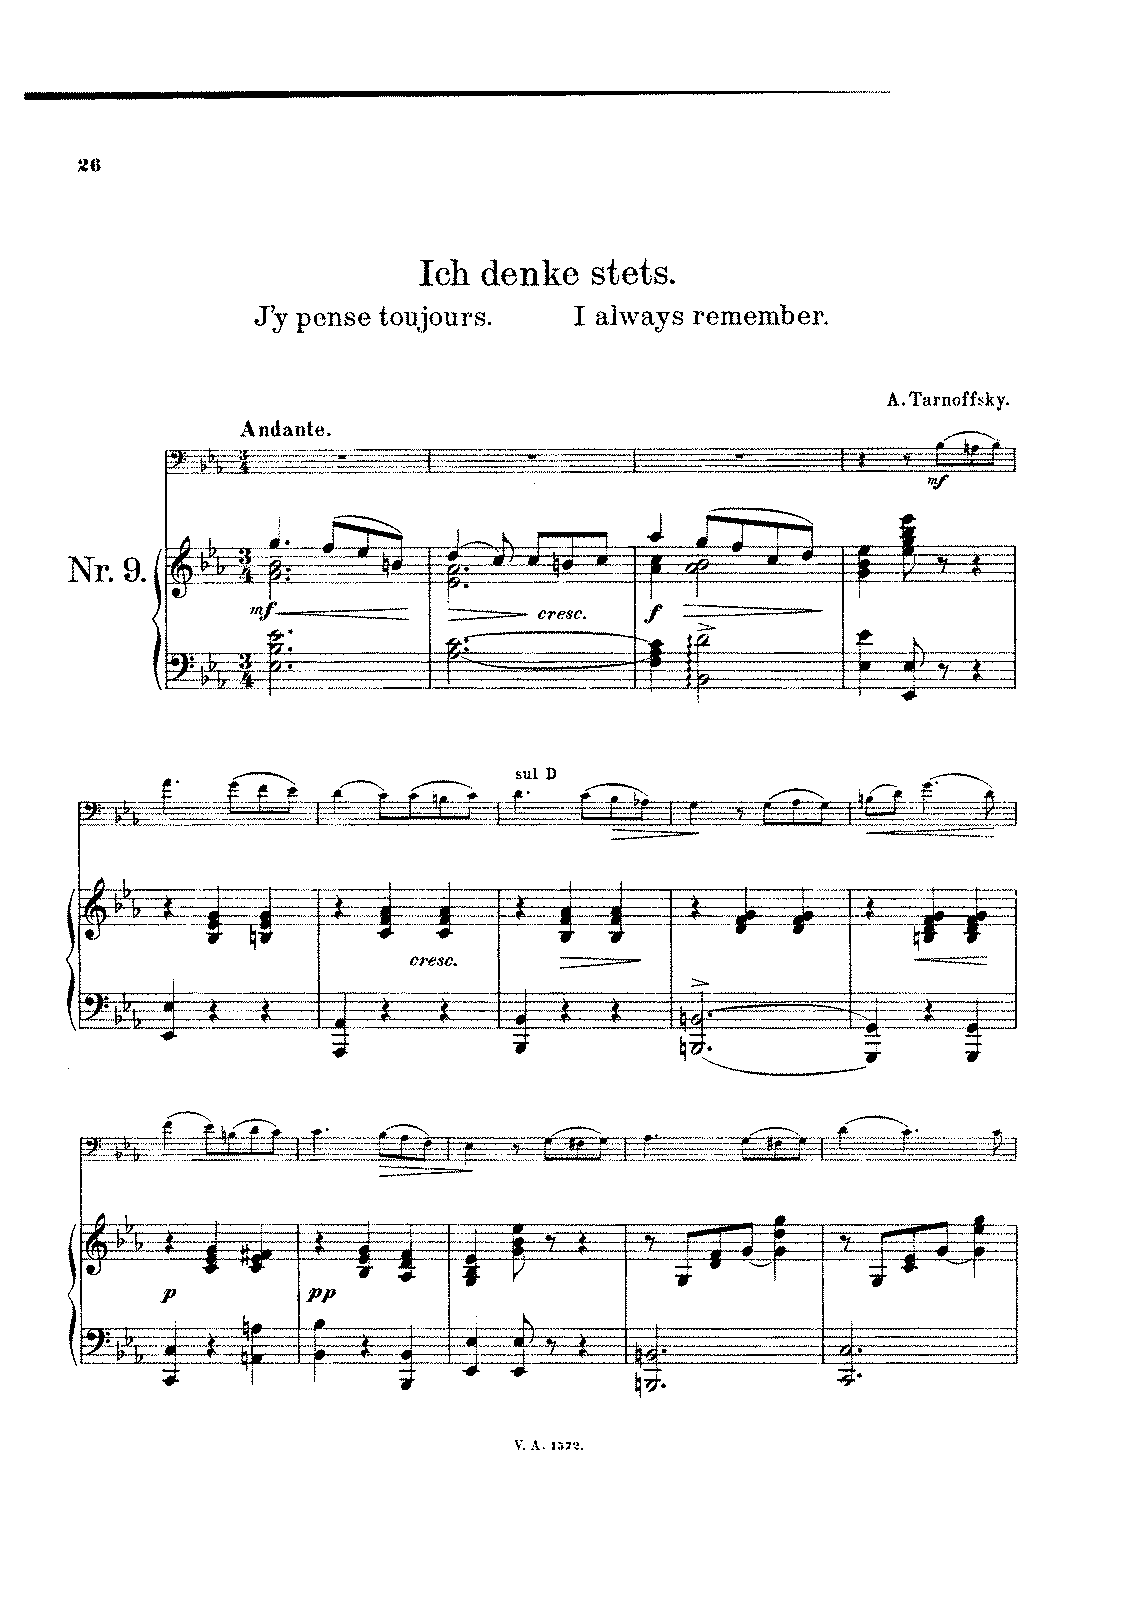 PMLP133604-Tarnoffsky - I always remember (Salter) for Cello and Piano score.pdf